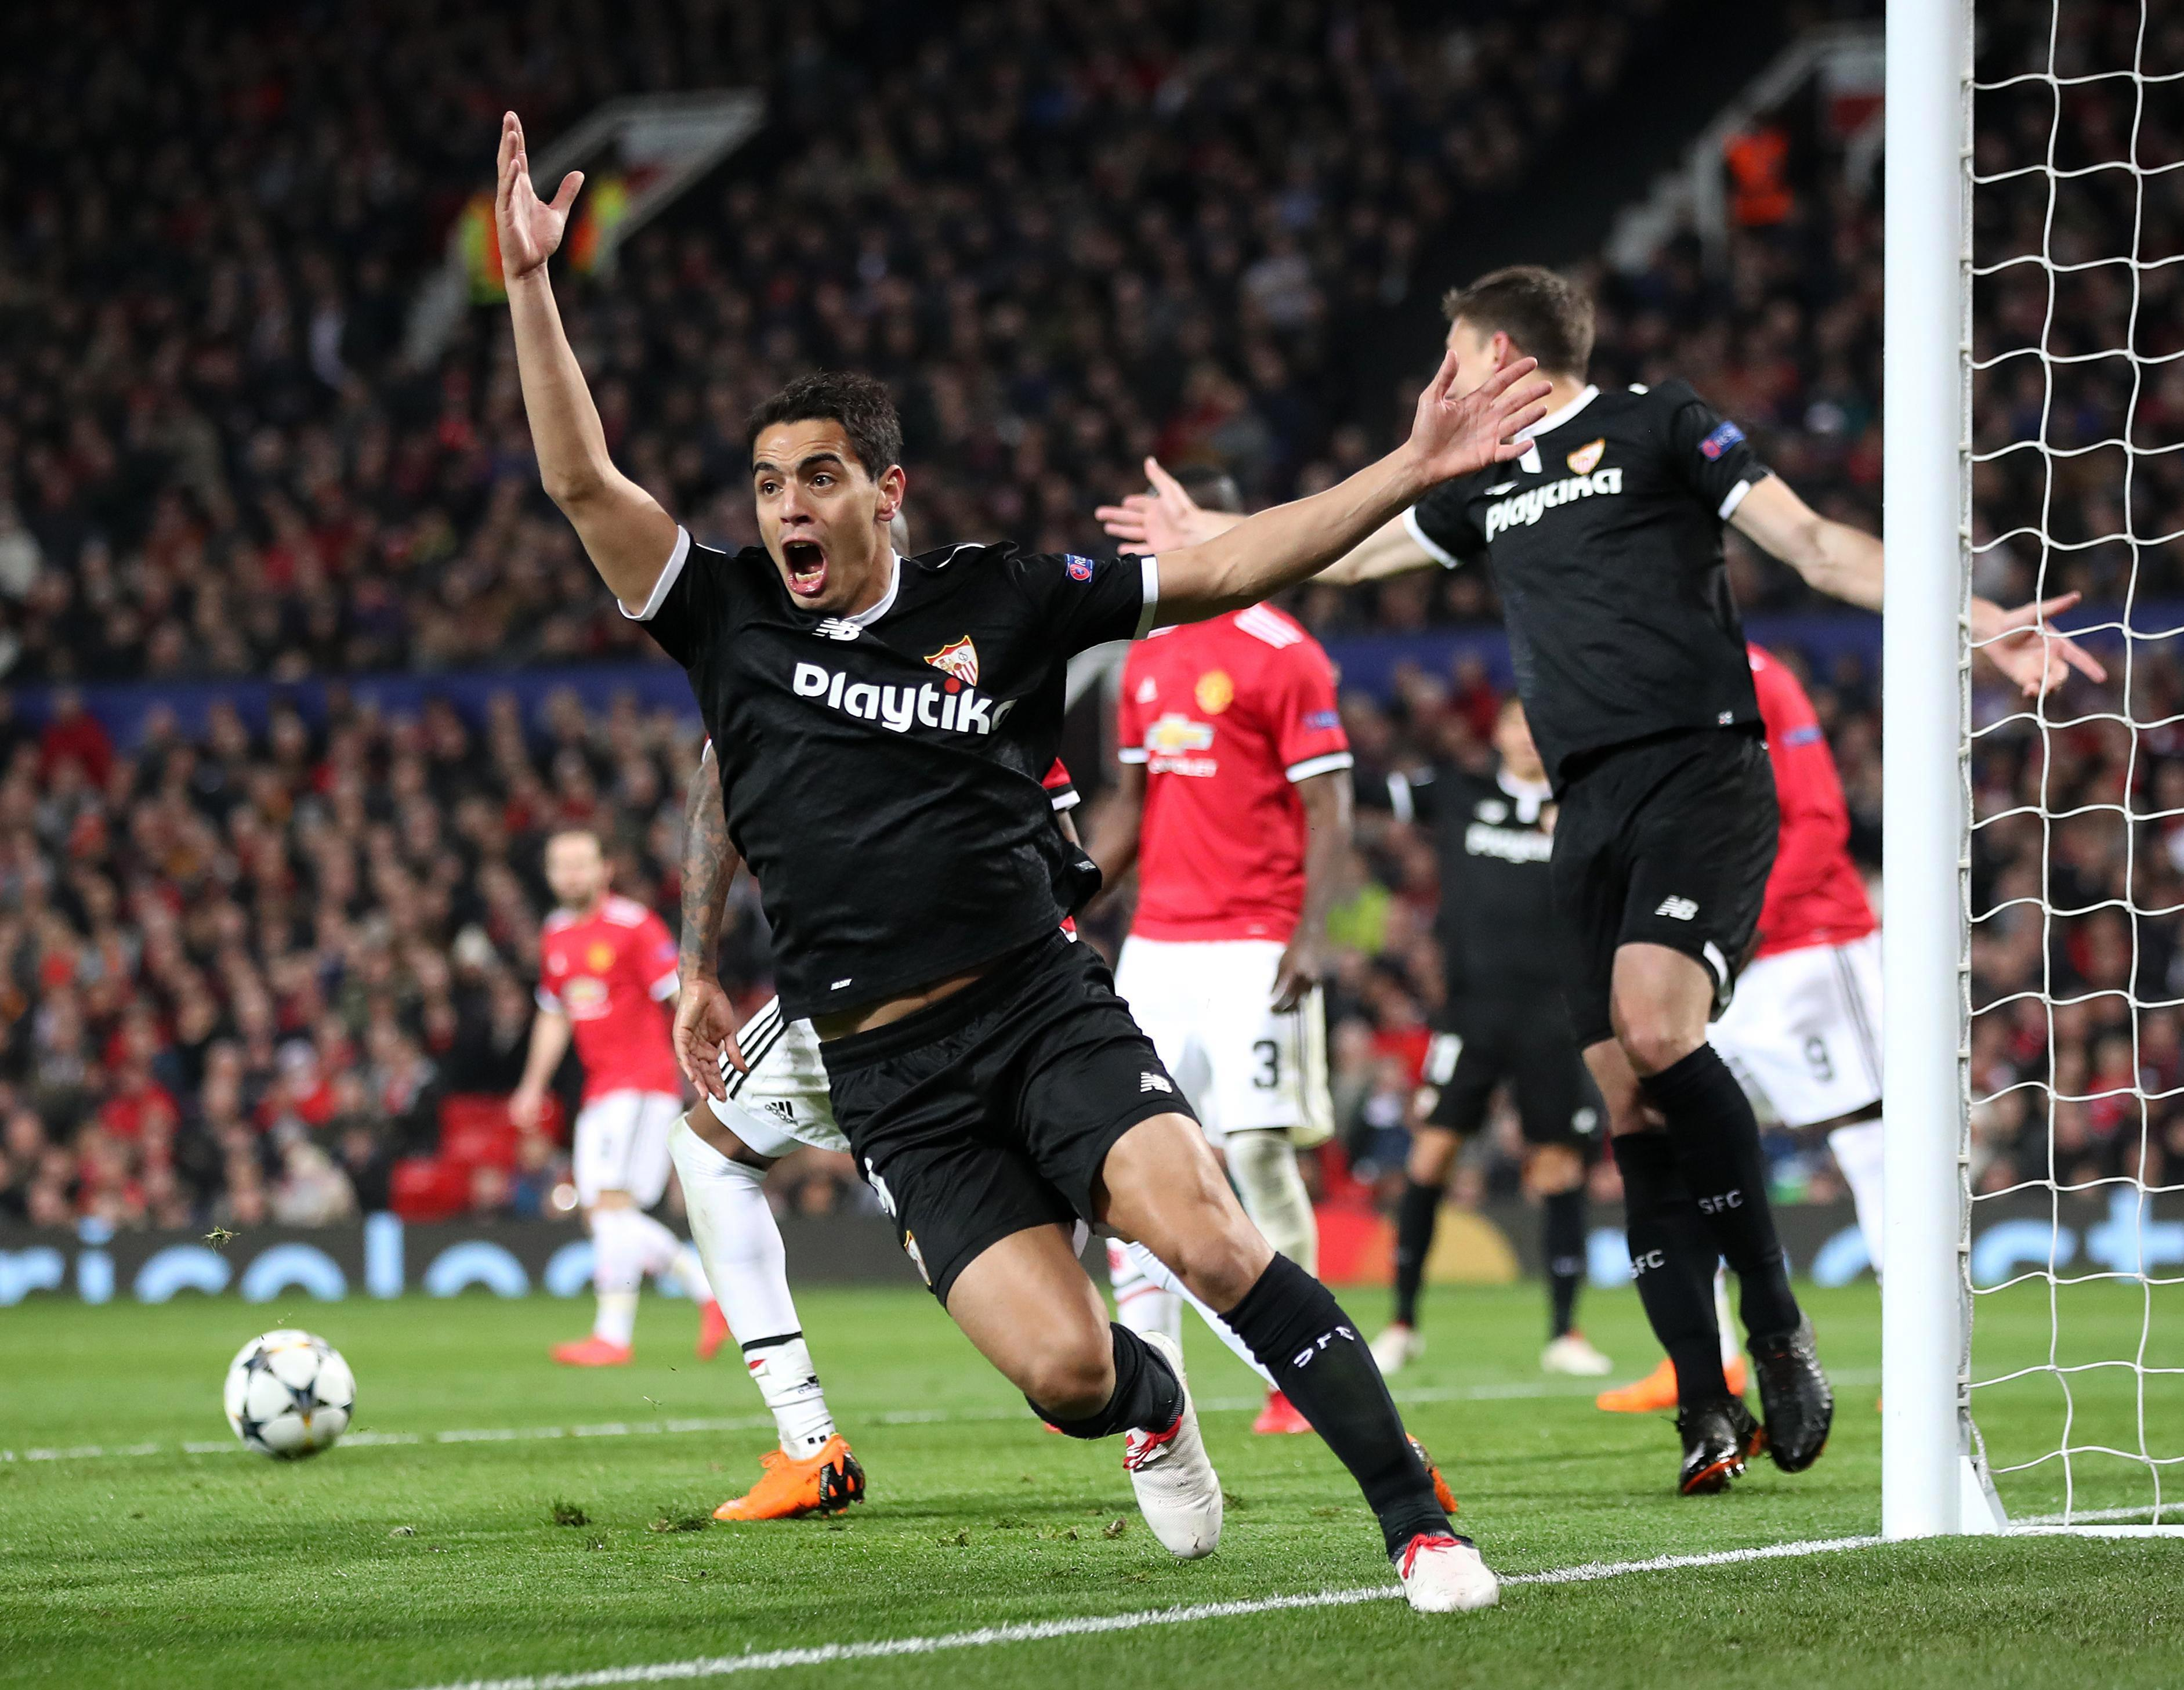 Ben Yedder came off the bench to shock Man United and secure victory for Sevilla